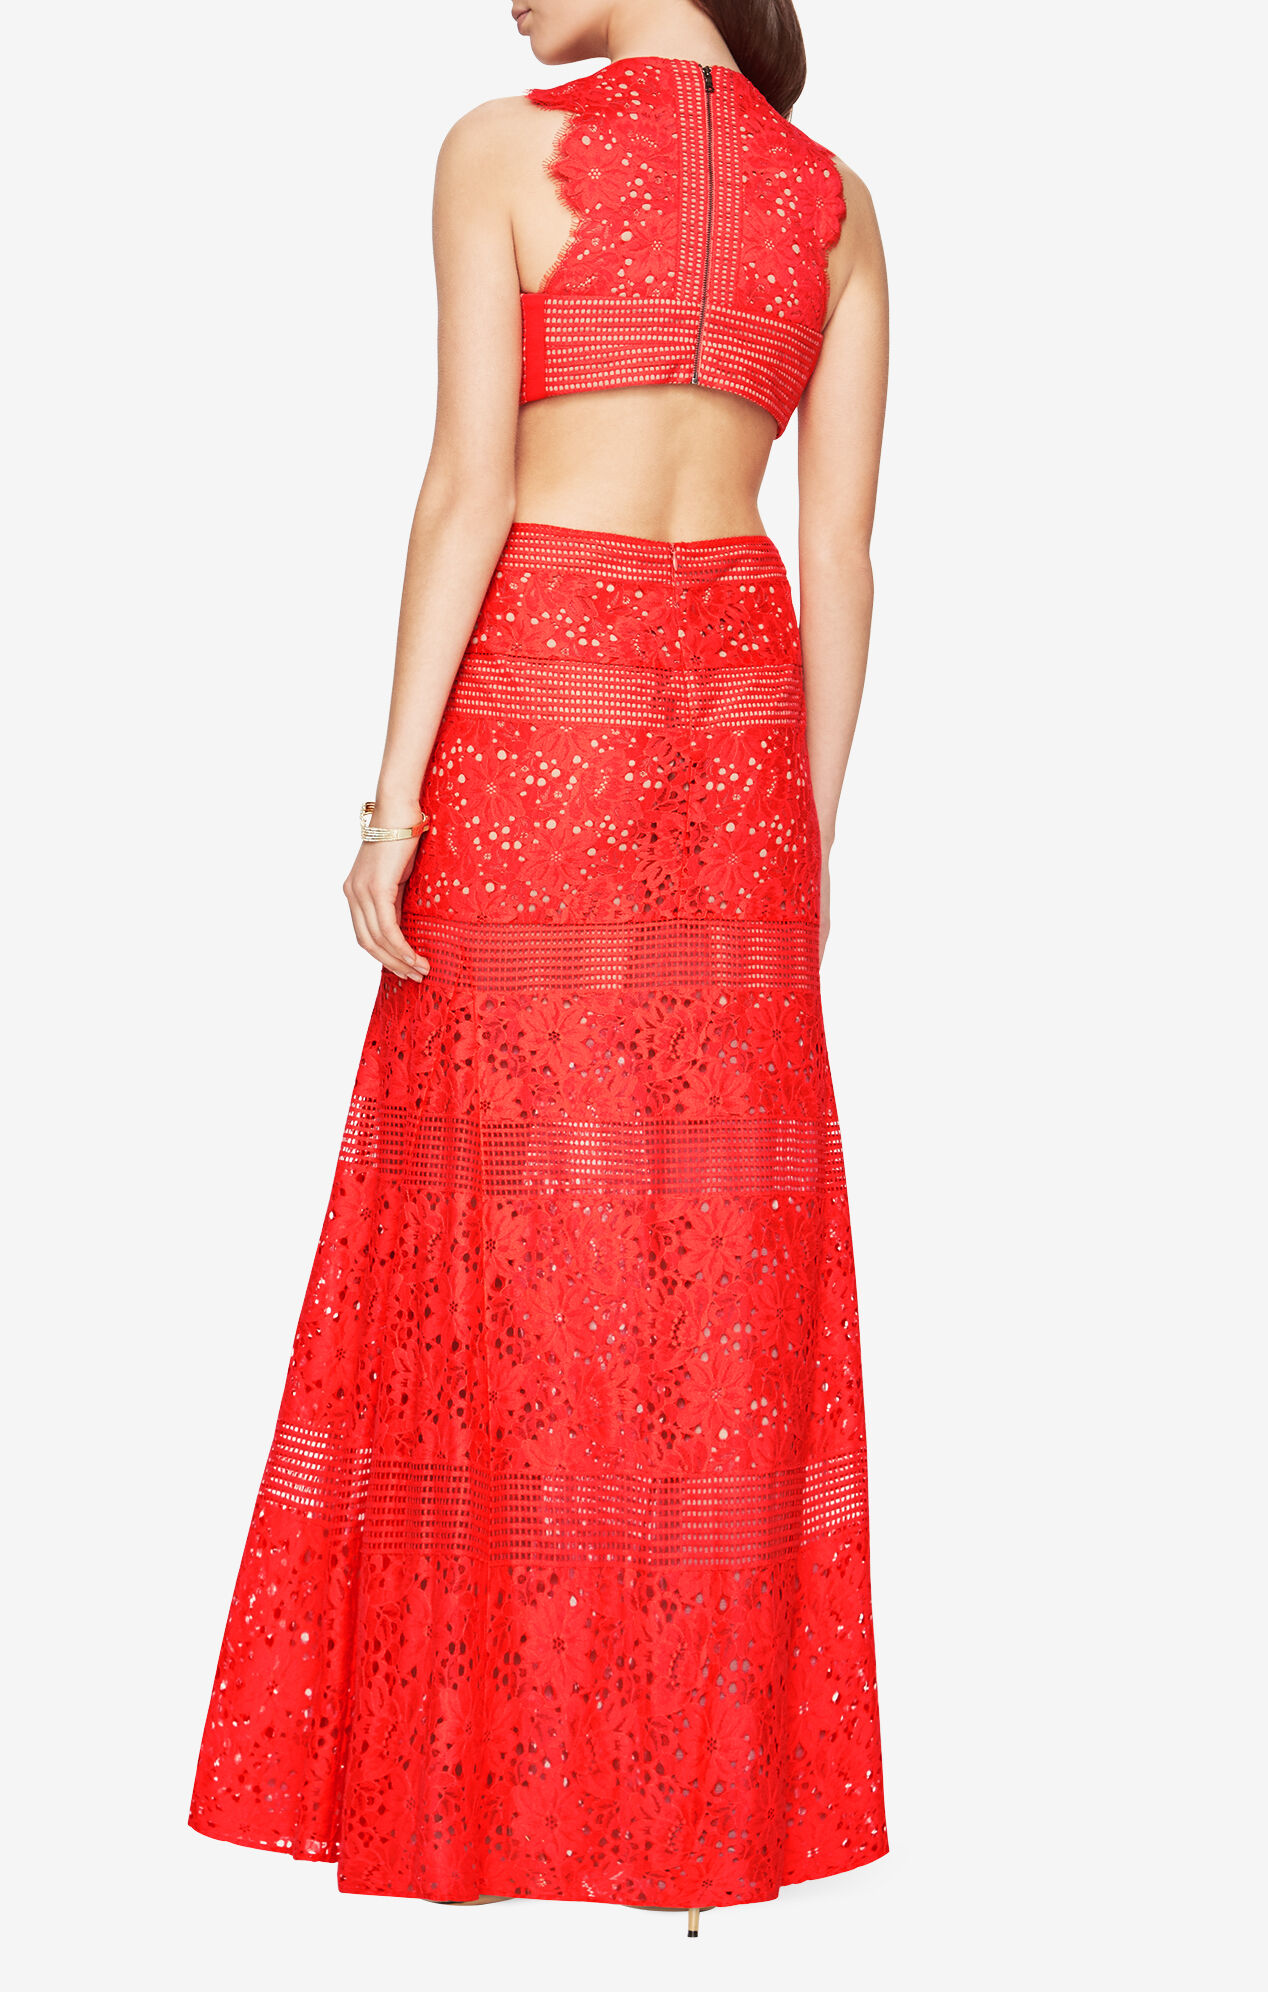 Merida Floral Lace Gown